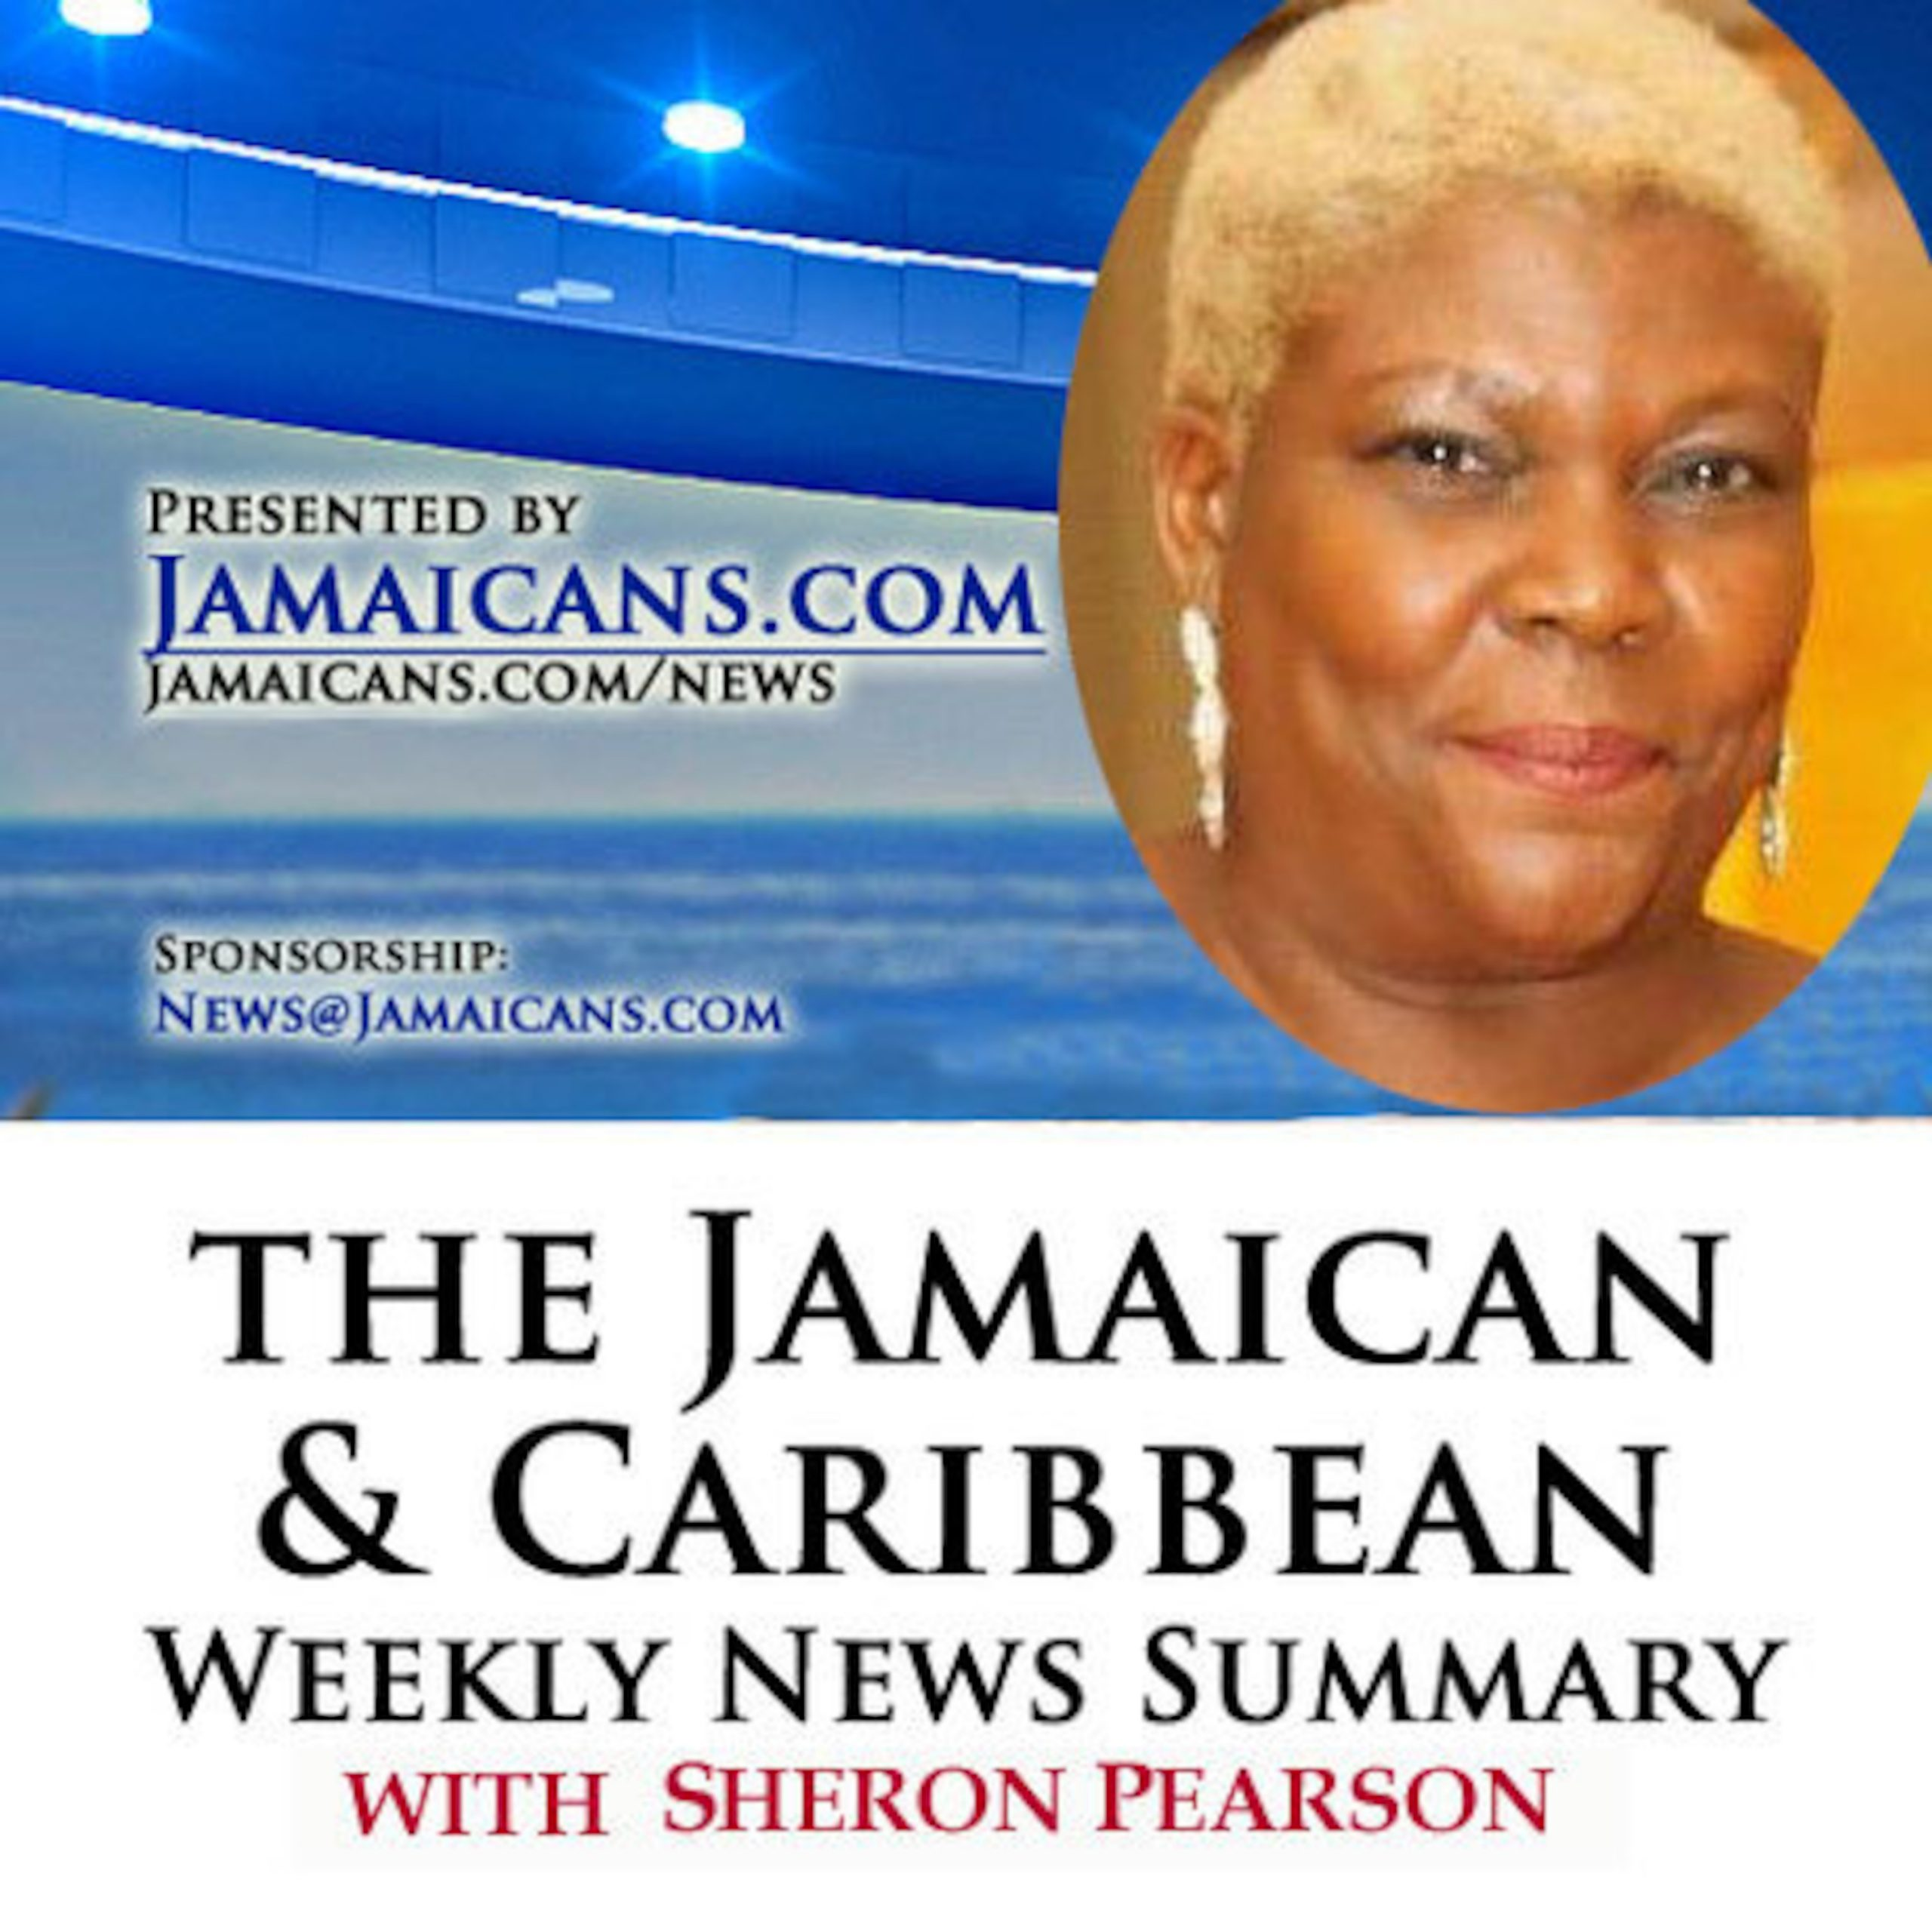 Listen to the Podcast of The Jamaica & Caribbean Weekly News Summary for the week ending June 26, 2020